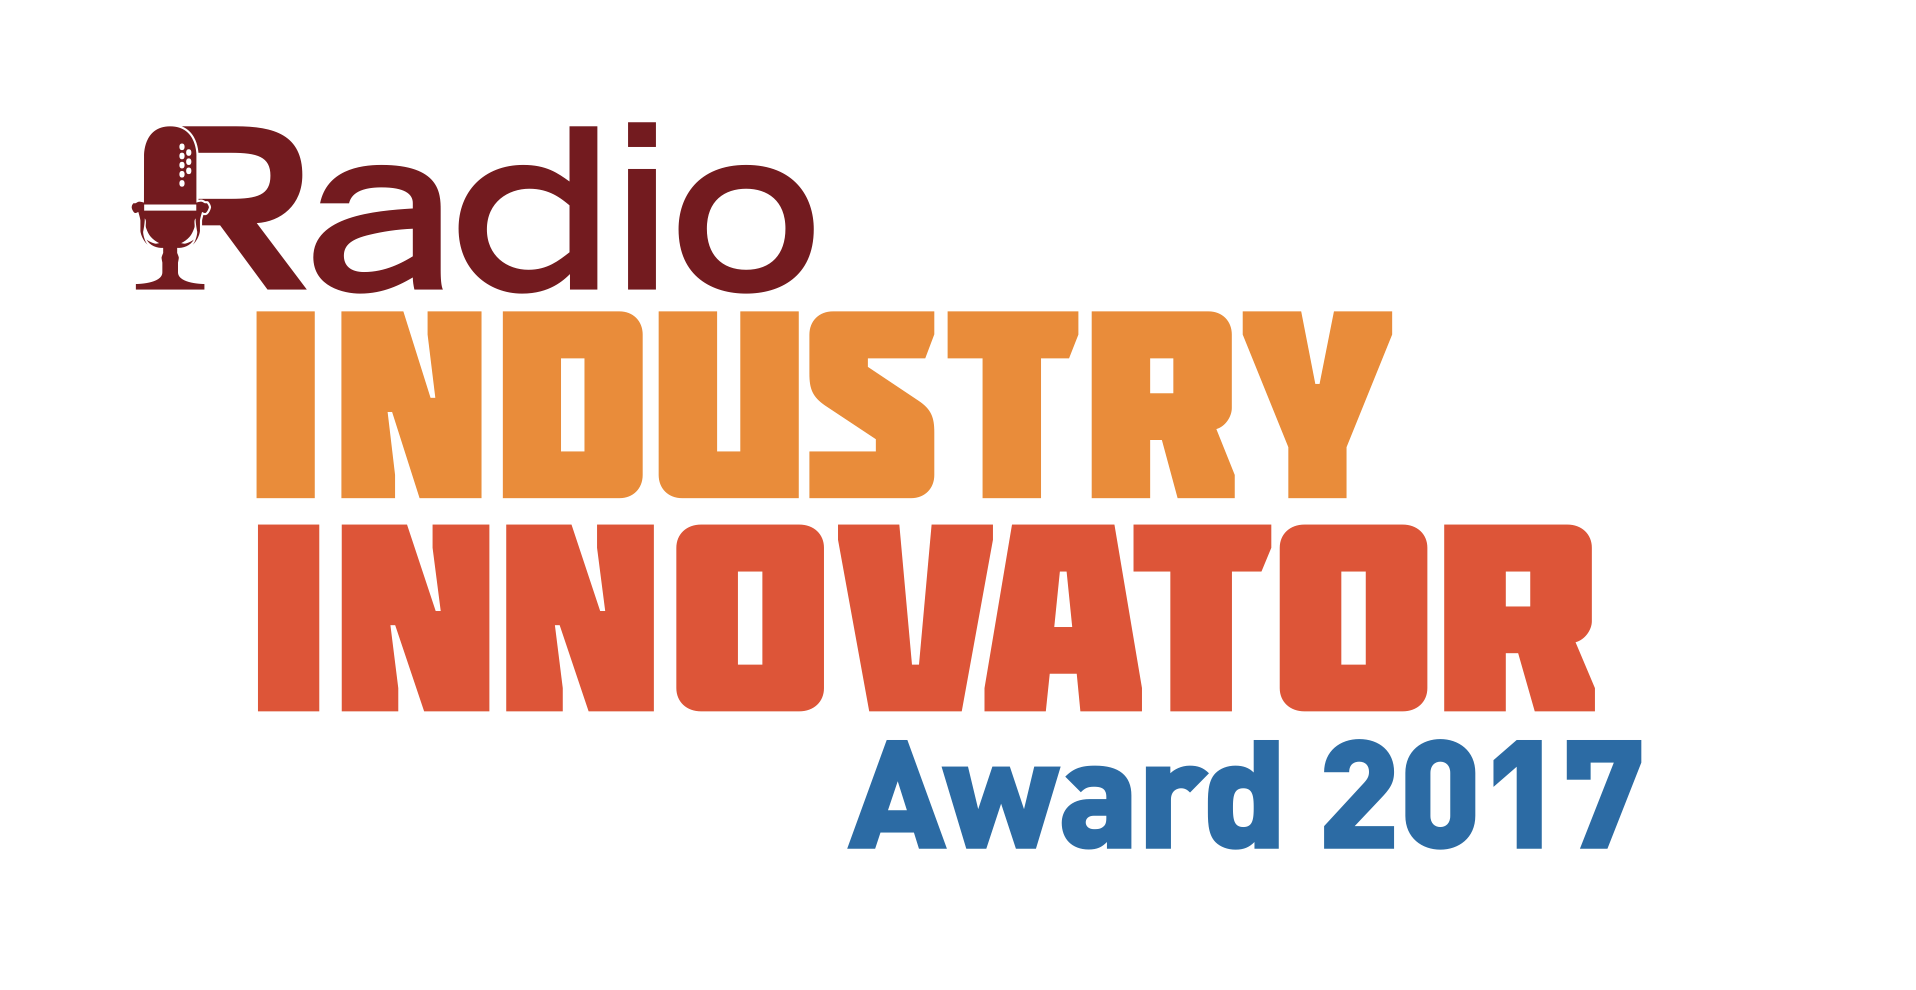 Radio Industry Innovator Award